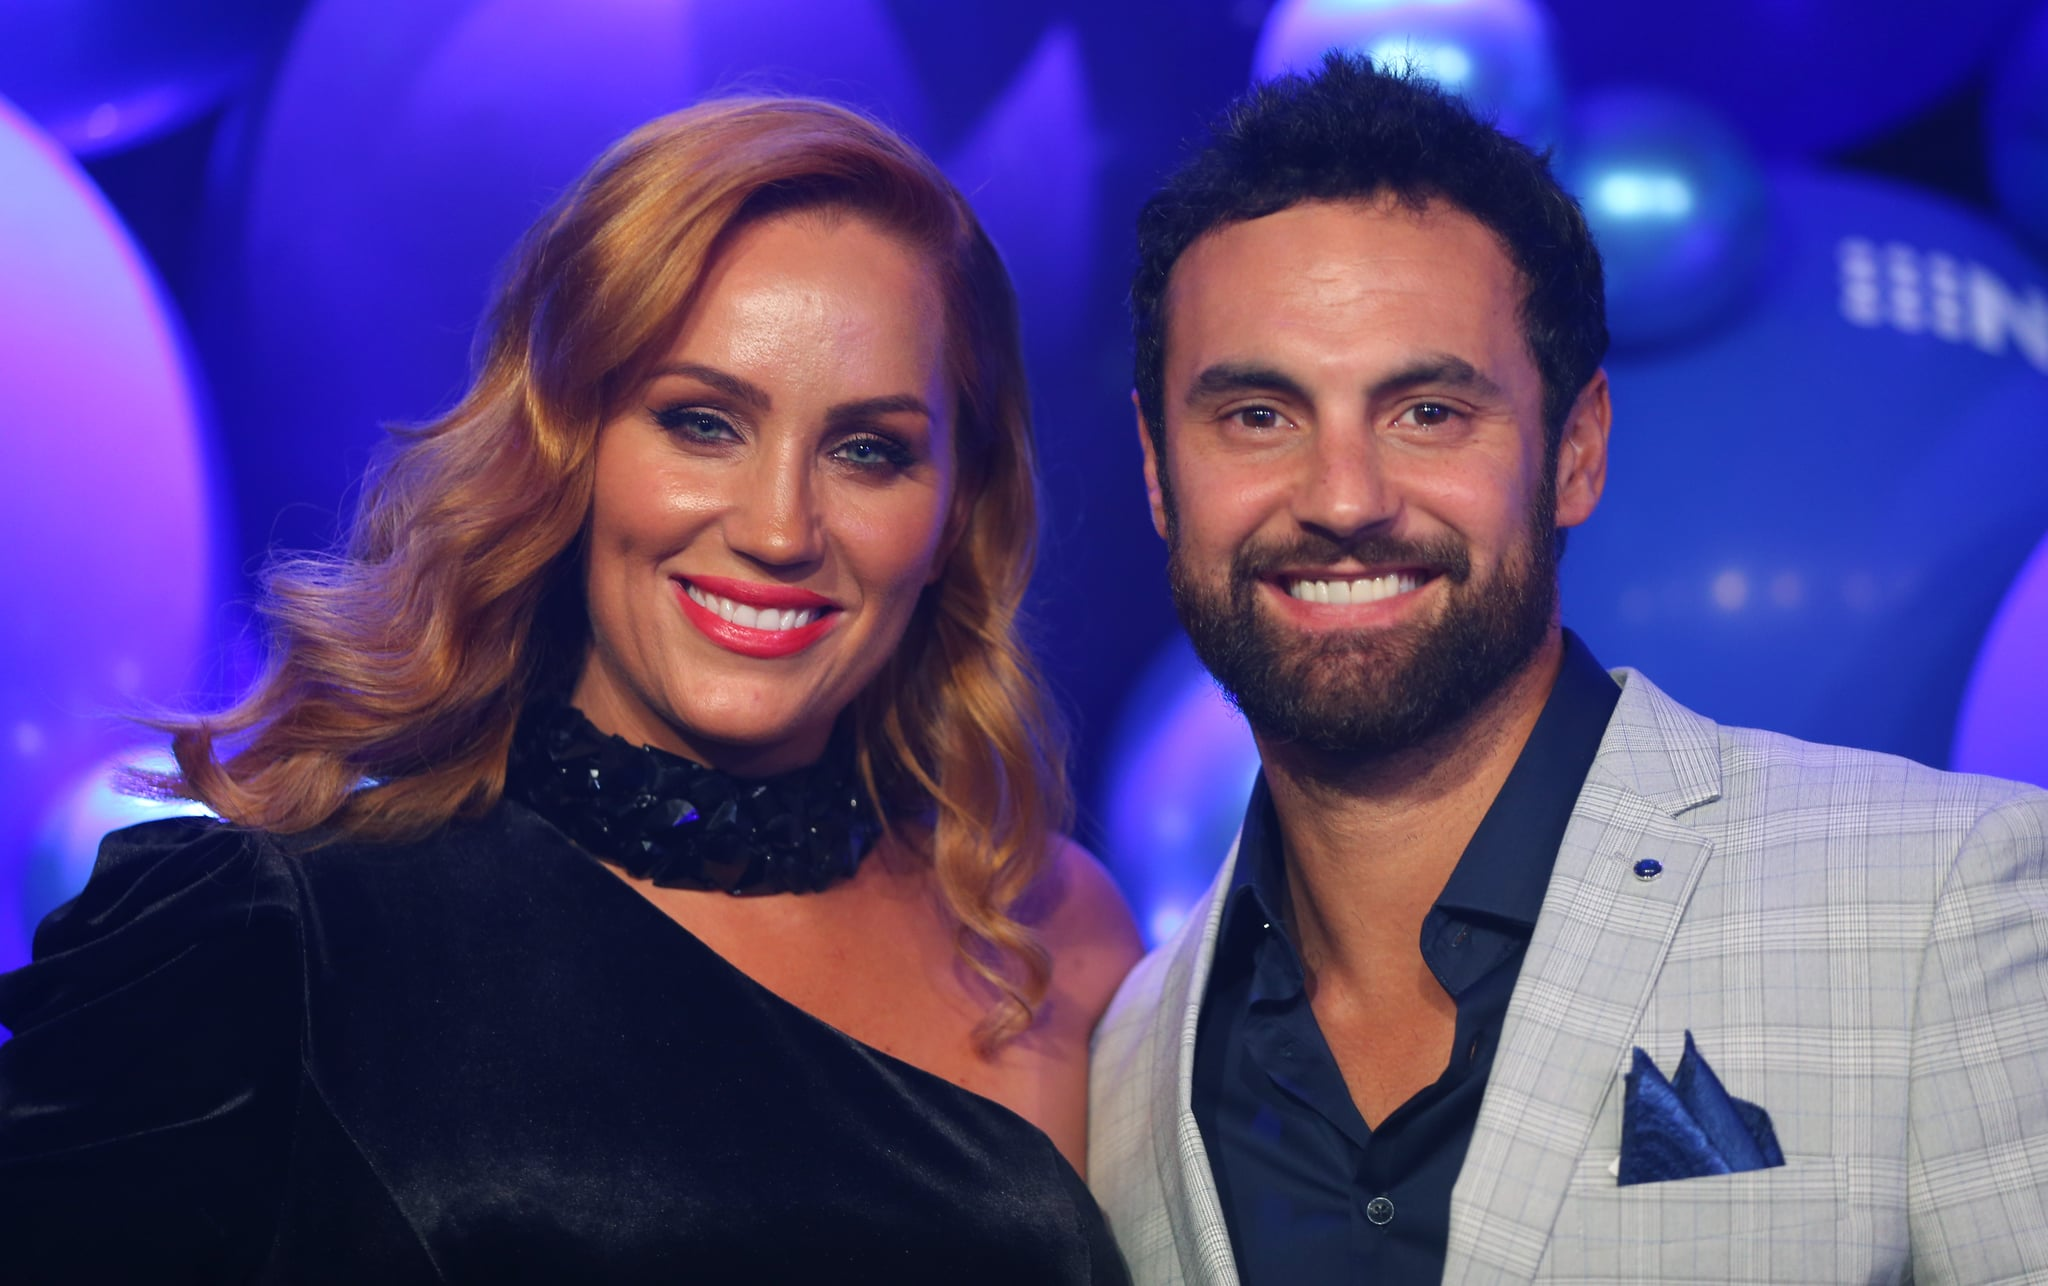 SYDNEY, AUSTRALIA - OCTOBER 16: Jules Robinson and Cameron Merchant attends the Nine 2020 Upfronts on October 16, 2019 in Sydney, Australia. (Photo by Don Arnold/WireImage)